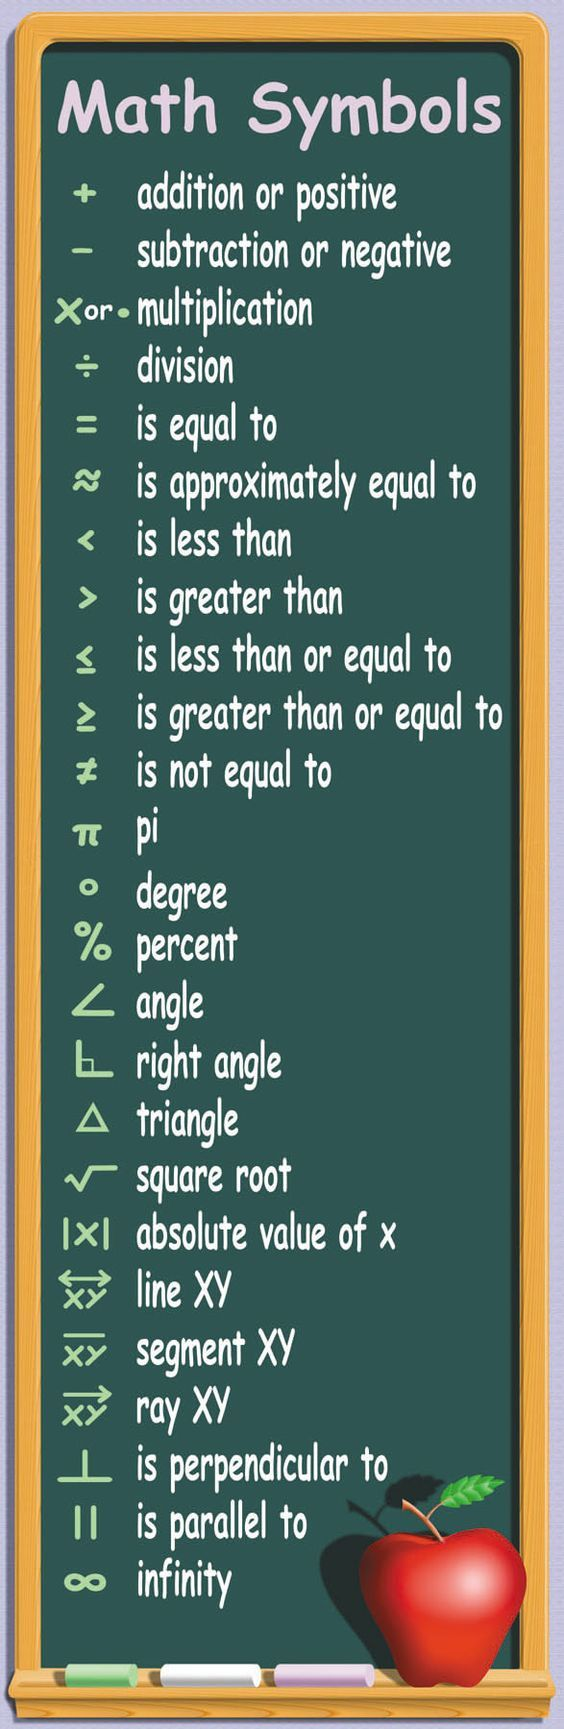 Forum learn english fluent landmath symbols fluent math classroom poster and banners containing some of the most common math symbols used in class and which need to be posted so students can always have buycottarizona Images